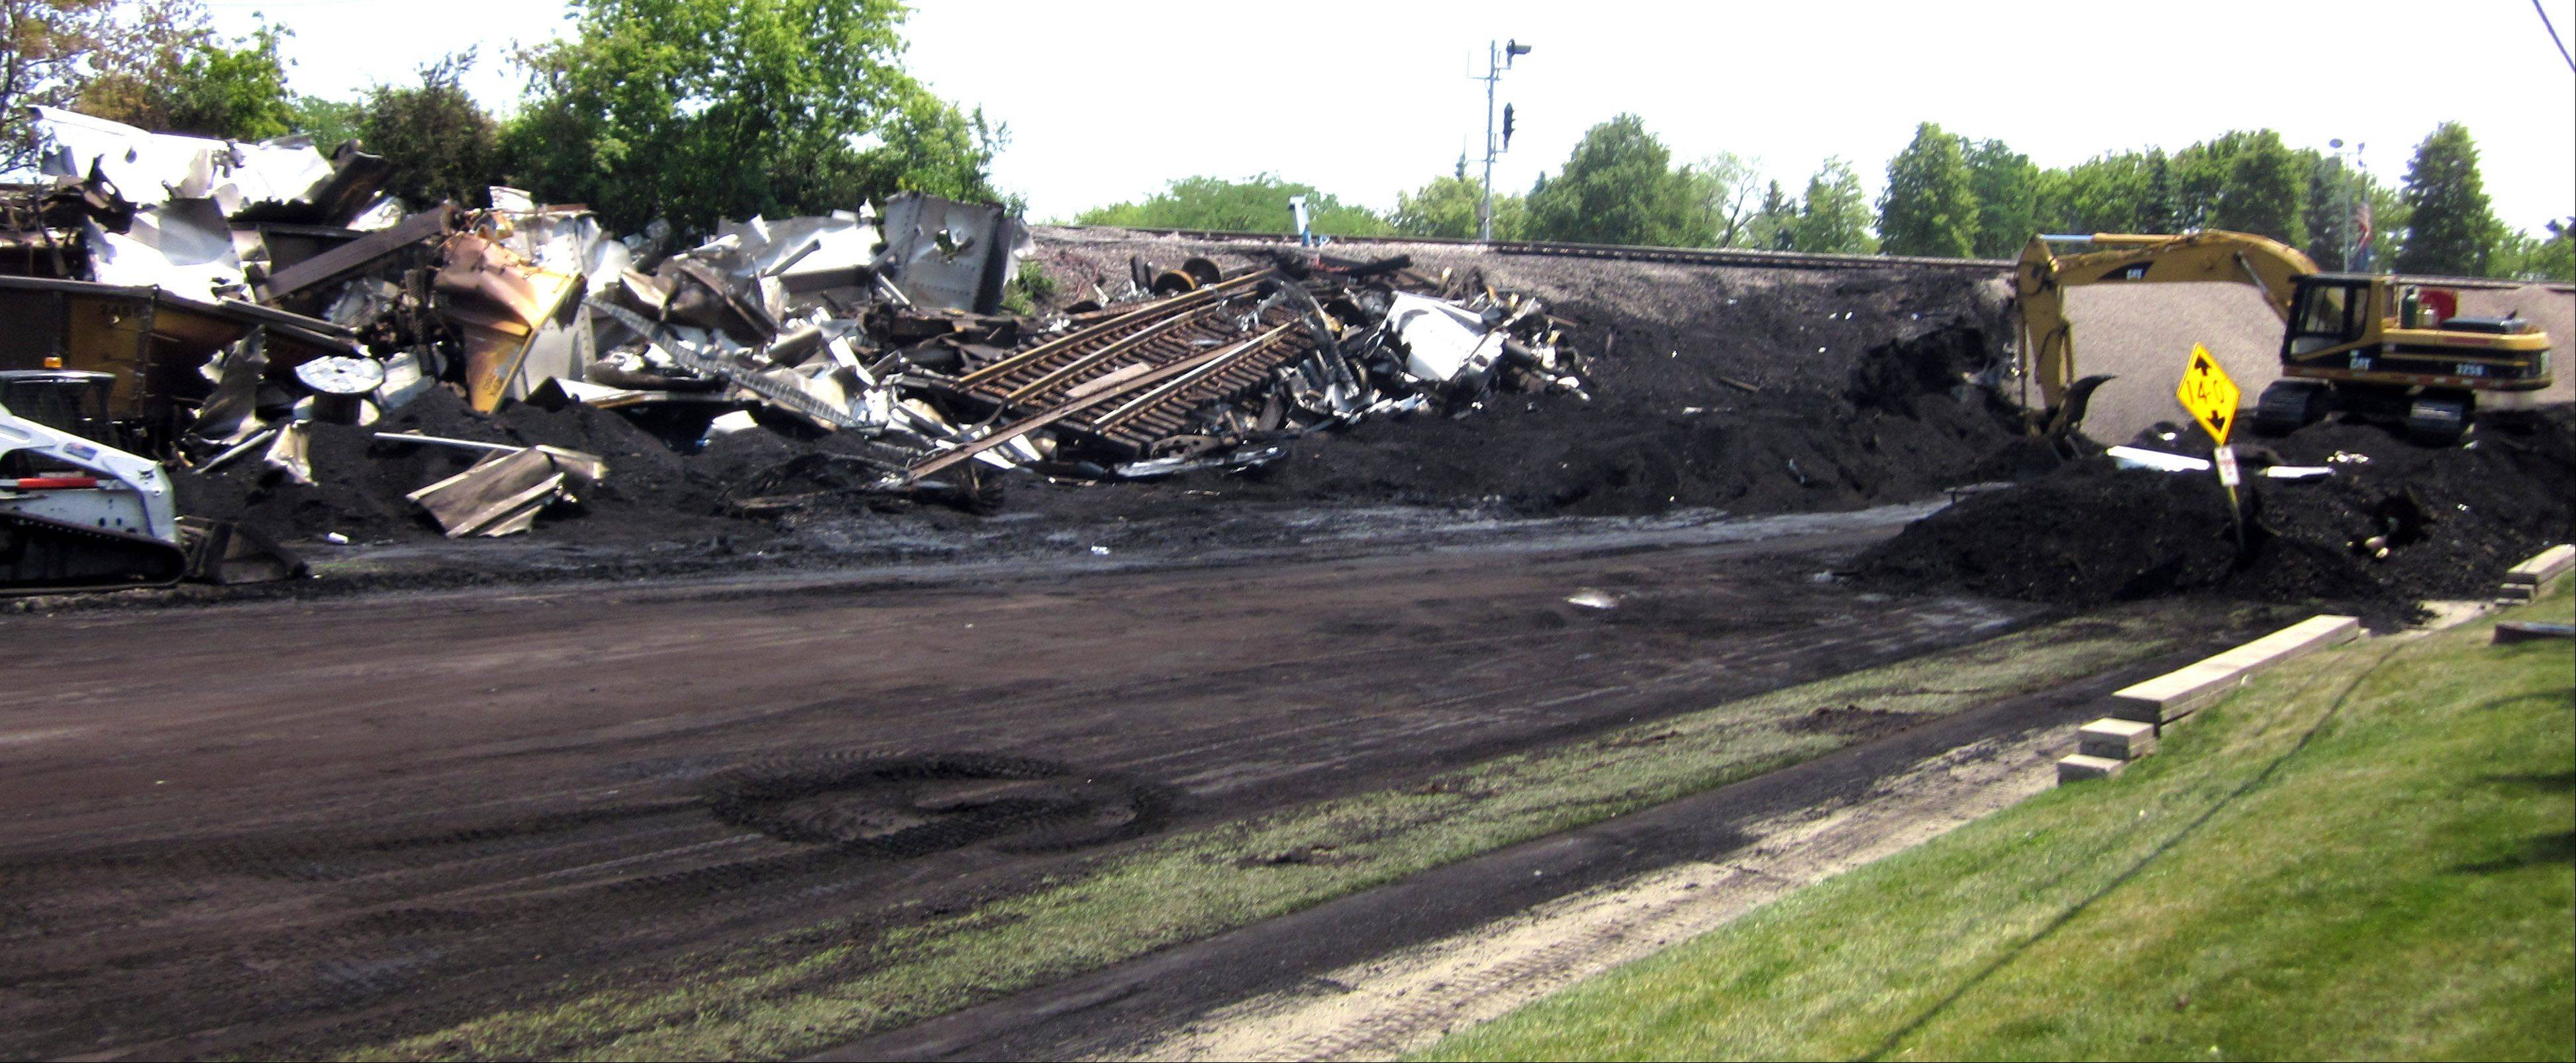 Debris and machinery marked the scene Friday of a Wednesday train derailment in Glenview.